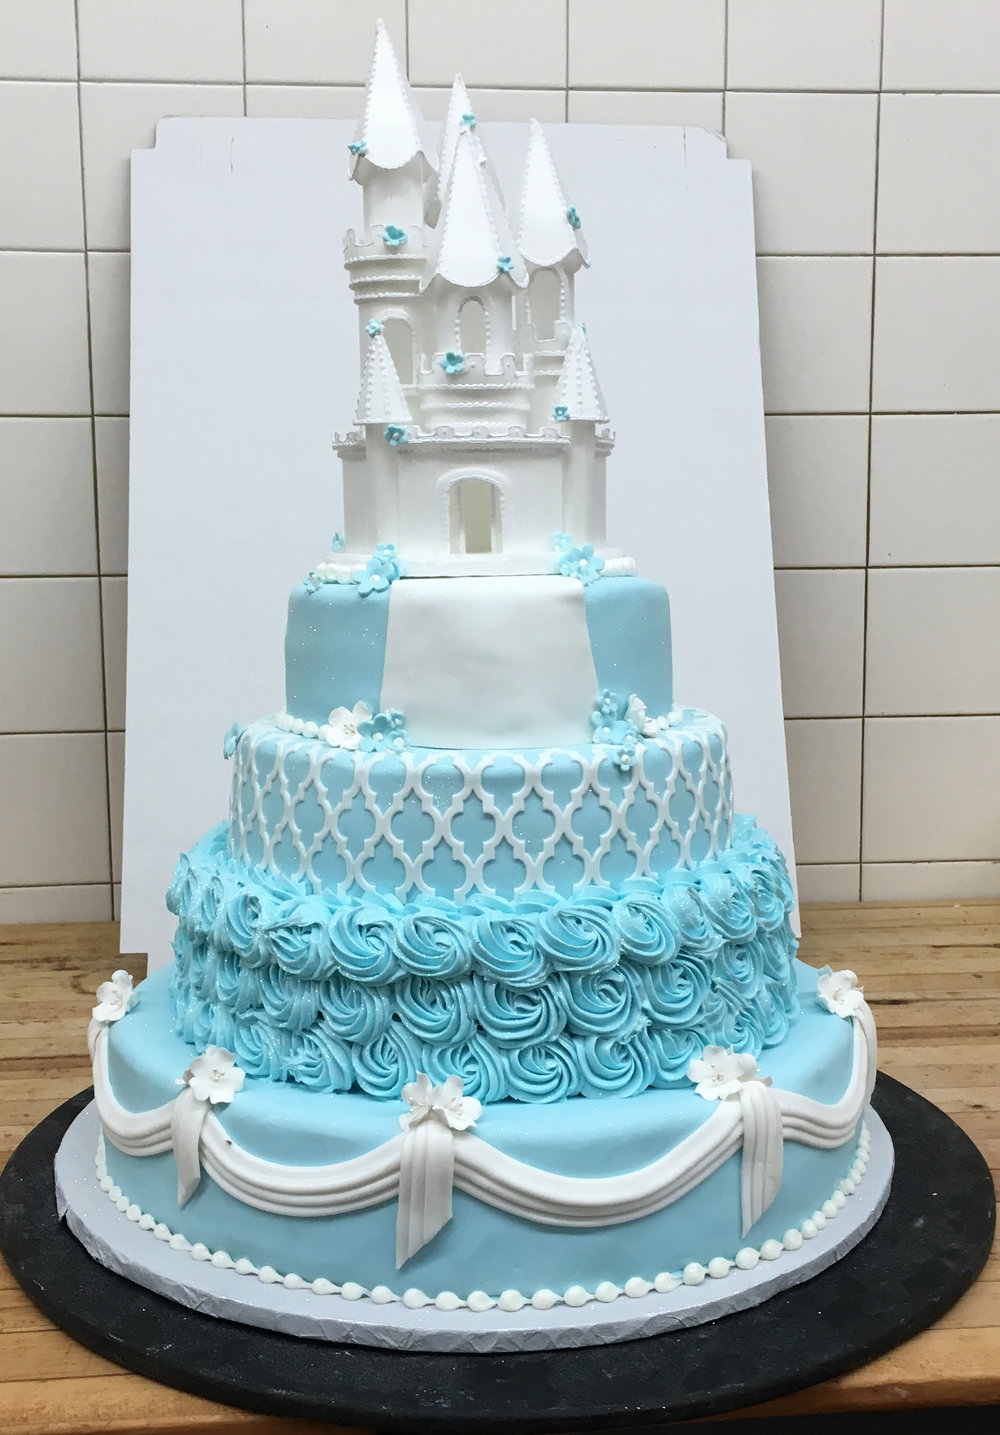 Castle with Rolled Fondant &Rosettes.jpg